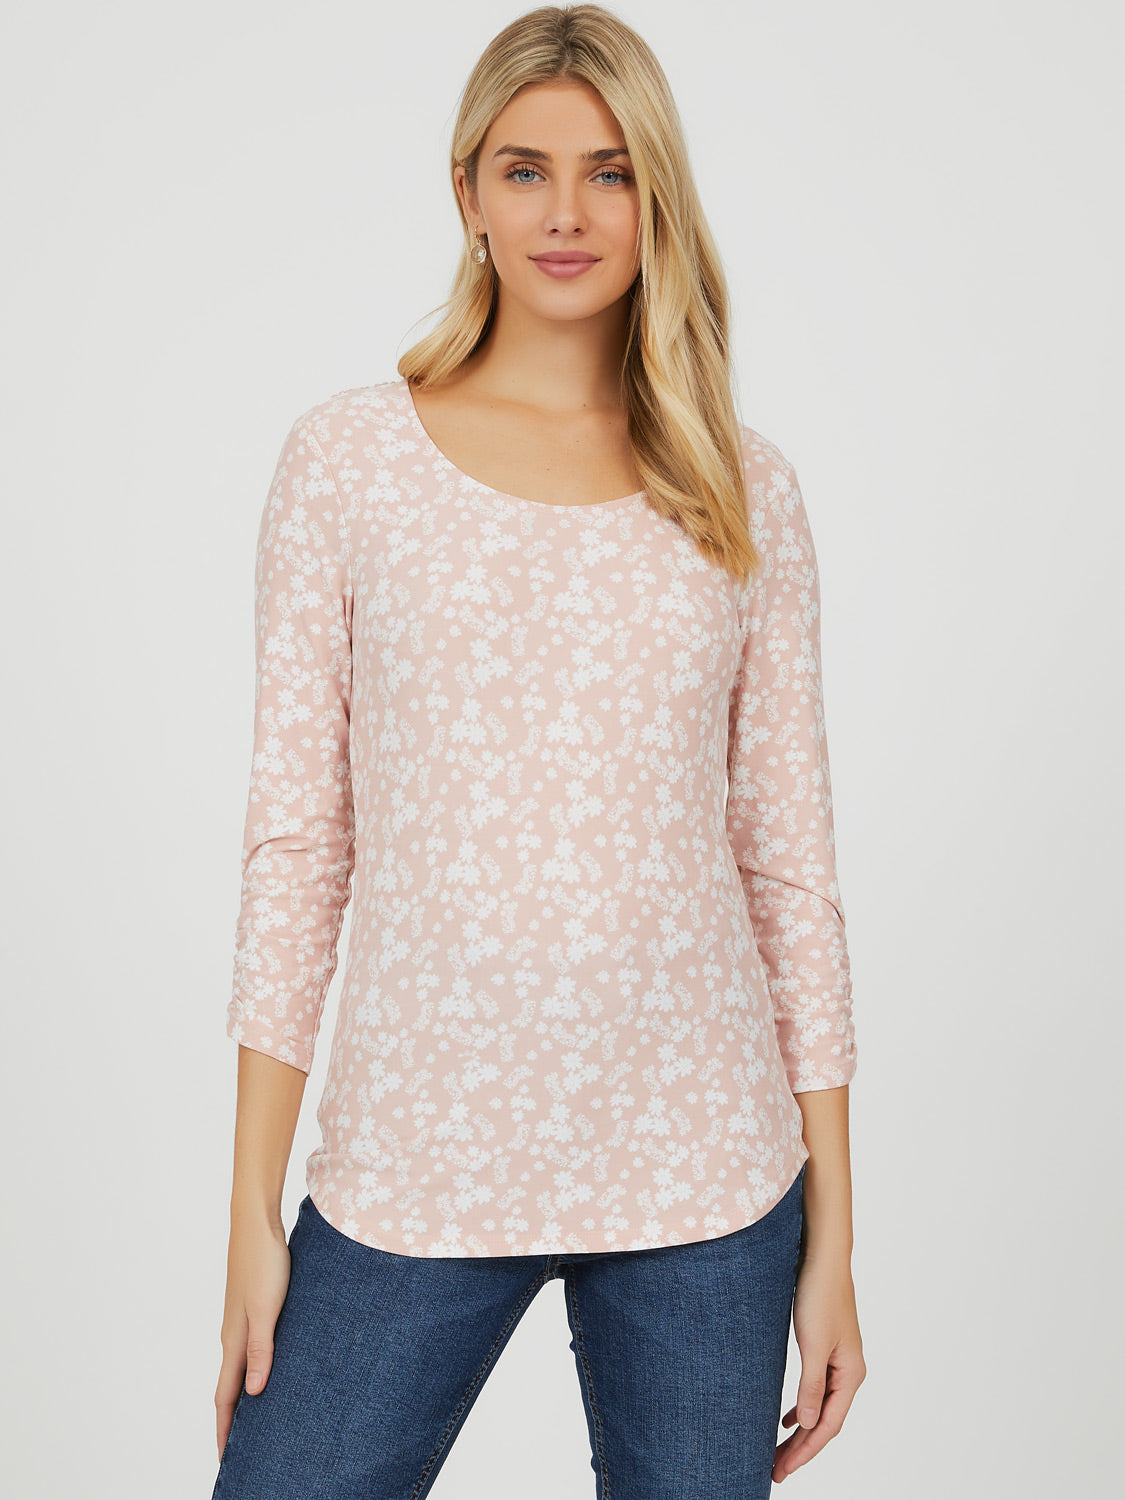 ¾ Sleeve Crochet Floral Top